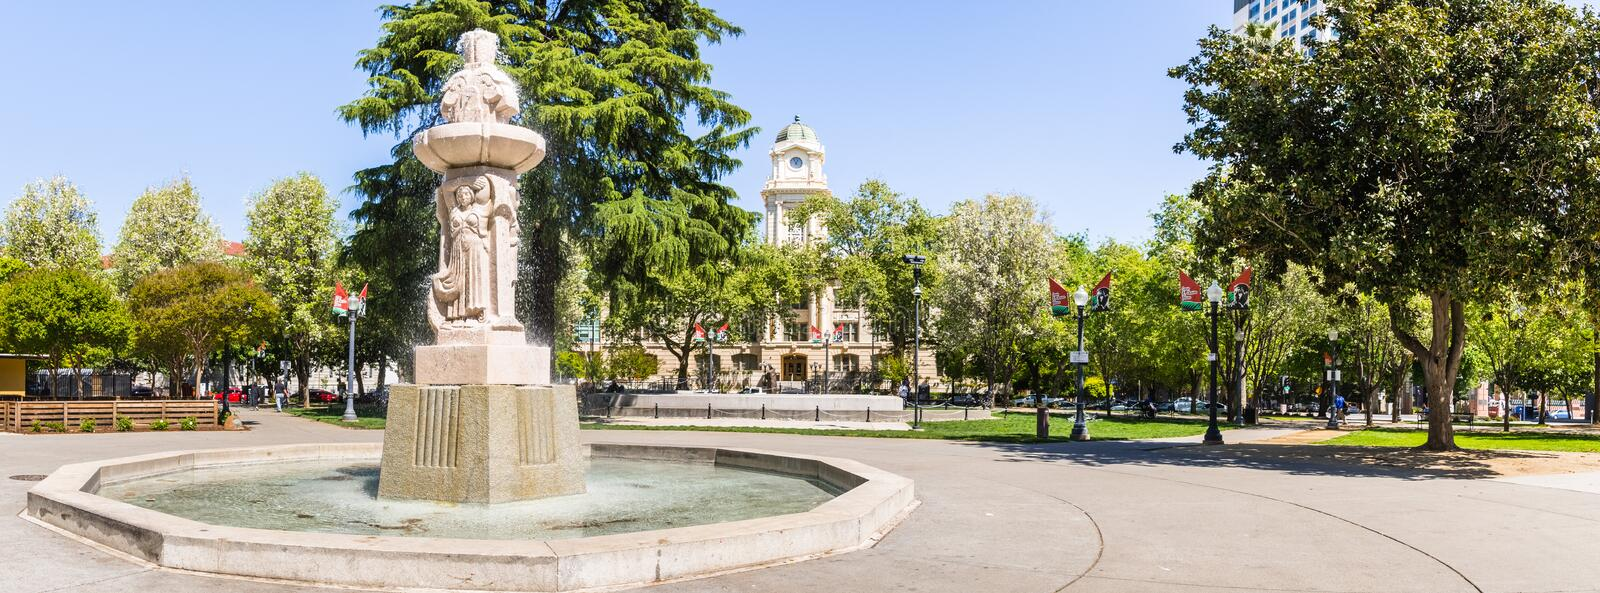 April 14, 2018 Sacramento / CA / USA - Panoramic view of Cesar Chavez Plaza situated in front of the City Hall building royalty free stock photo